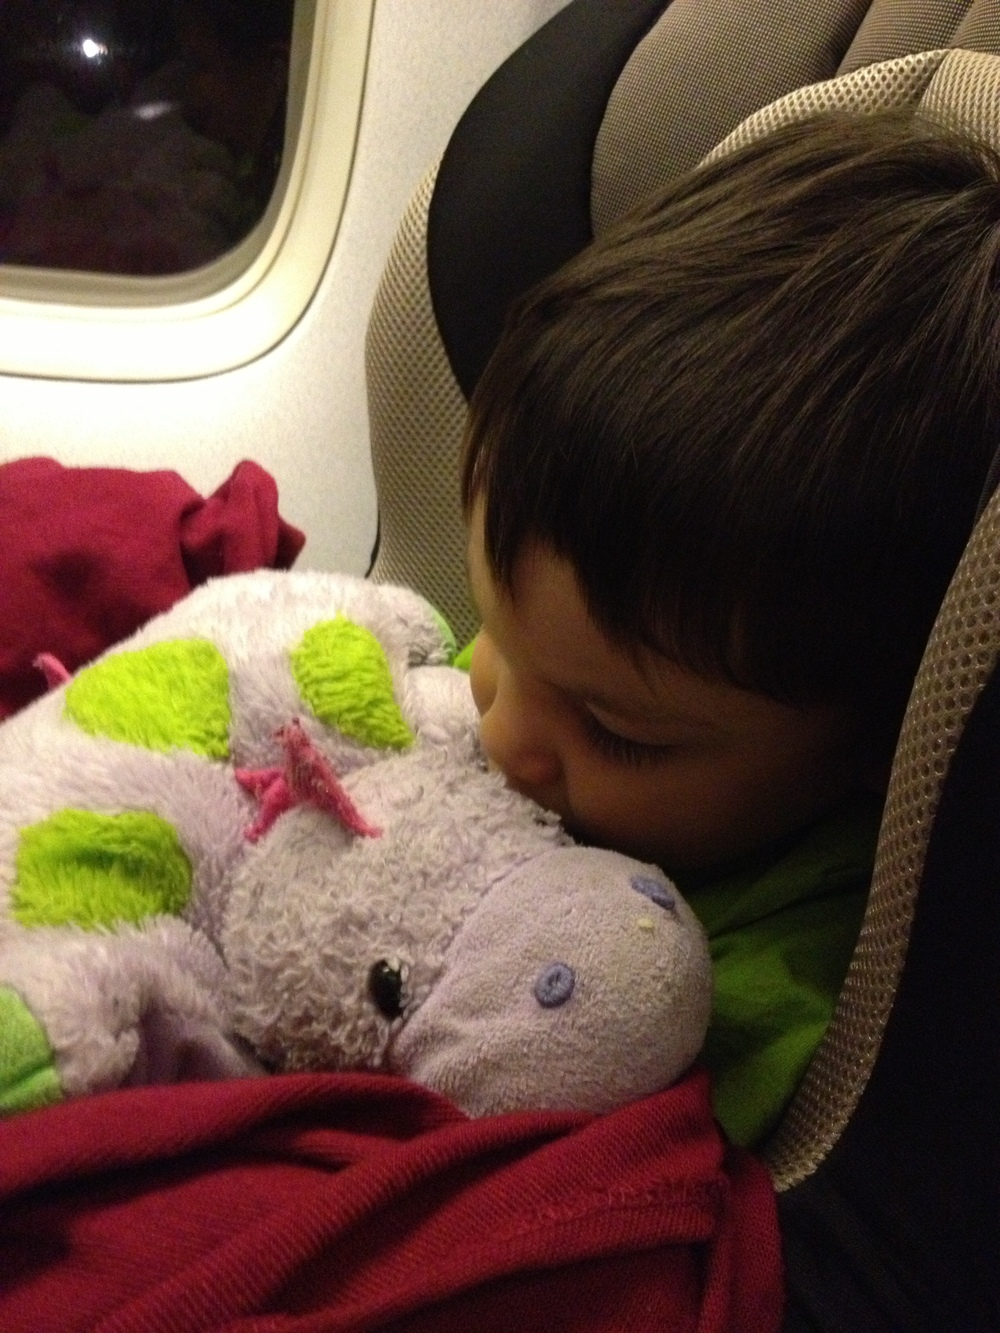 All ready for the flight in his car seat and with his favourite stuffed toy, Baby Dino.